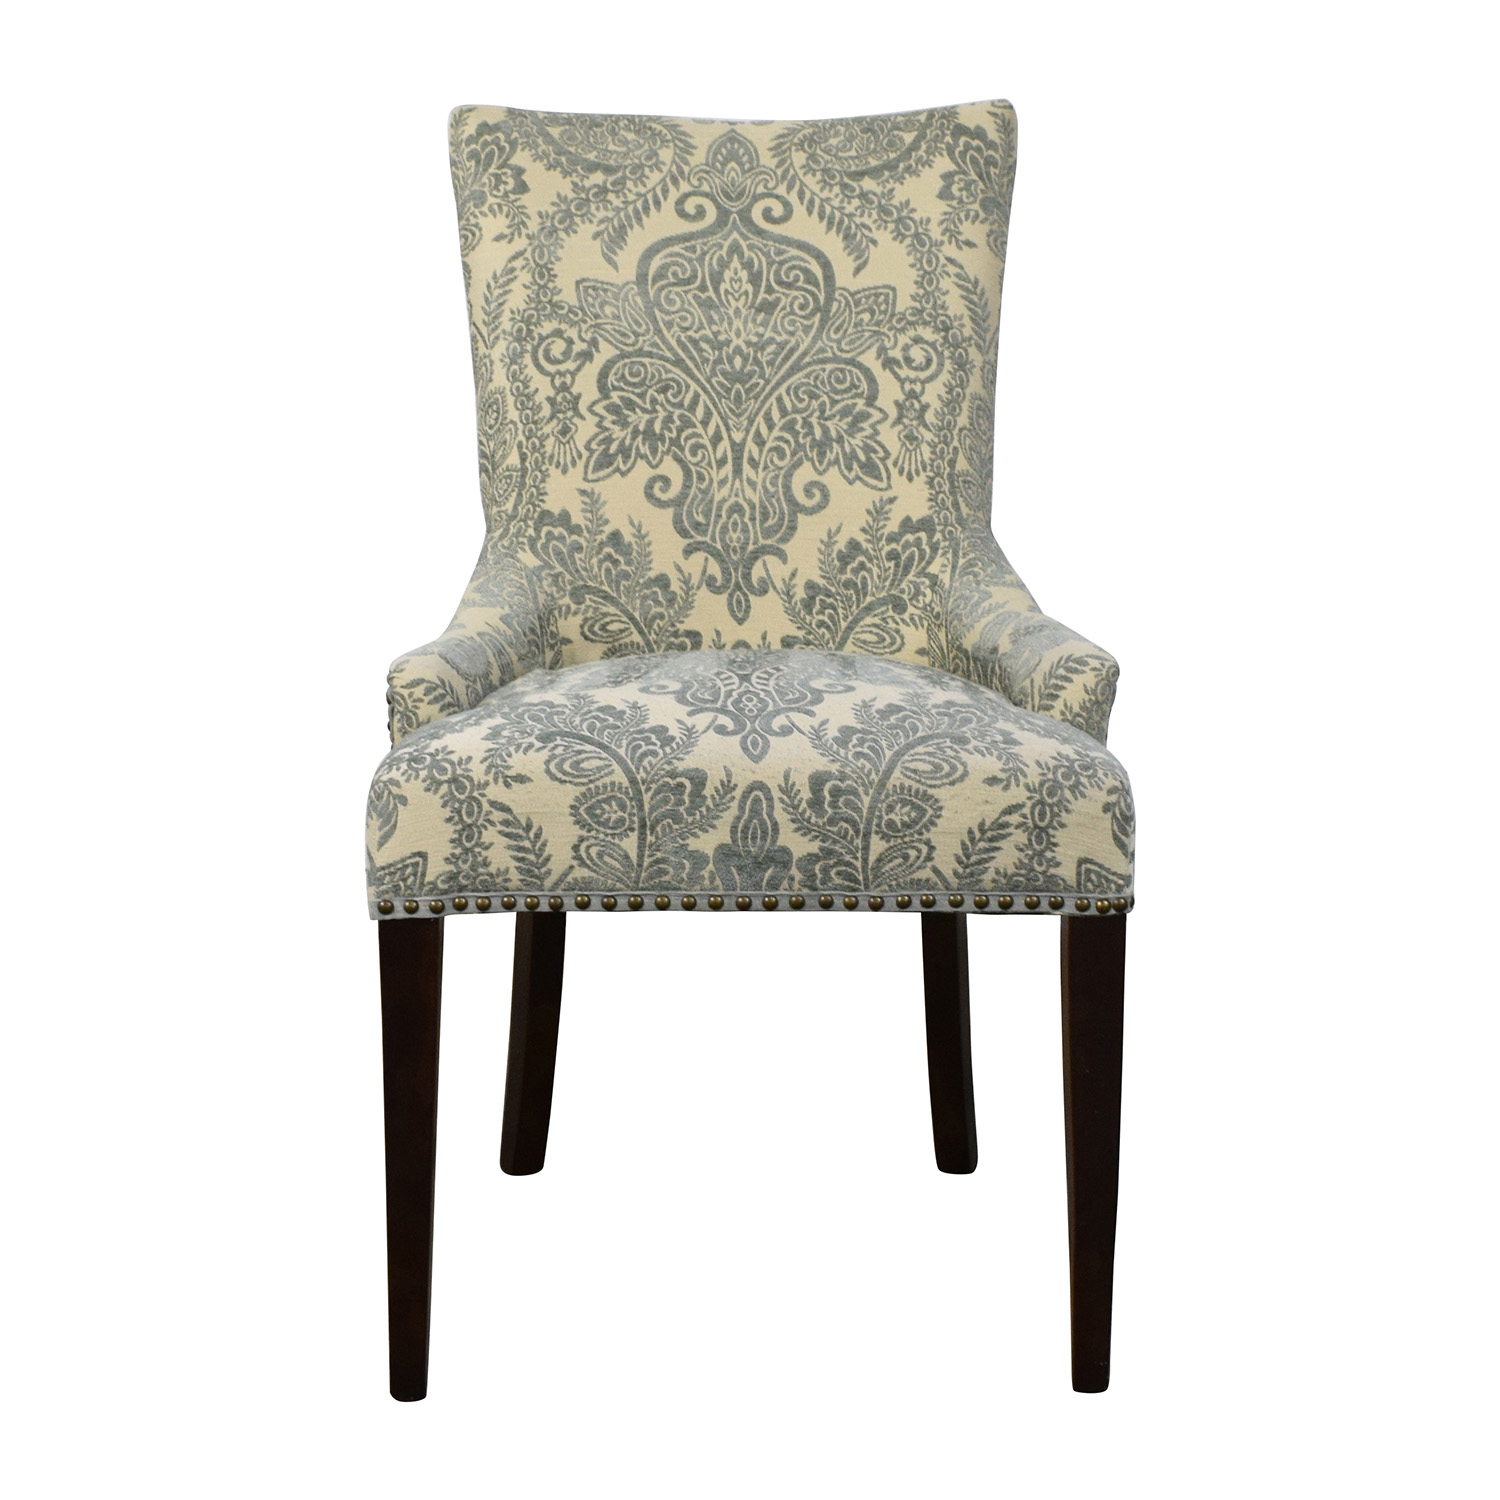 Pier 1 Imports Pier 1 Imports Adelle Collection Smoke Blue Dining Chair  Accent Chairs ...